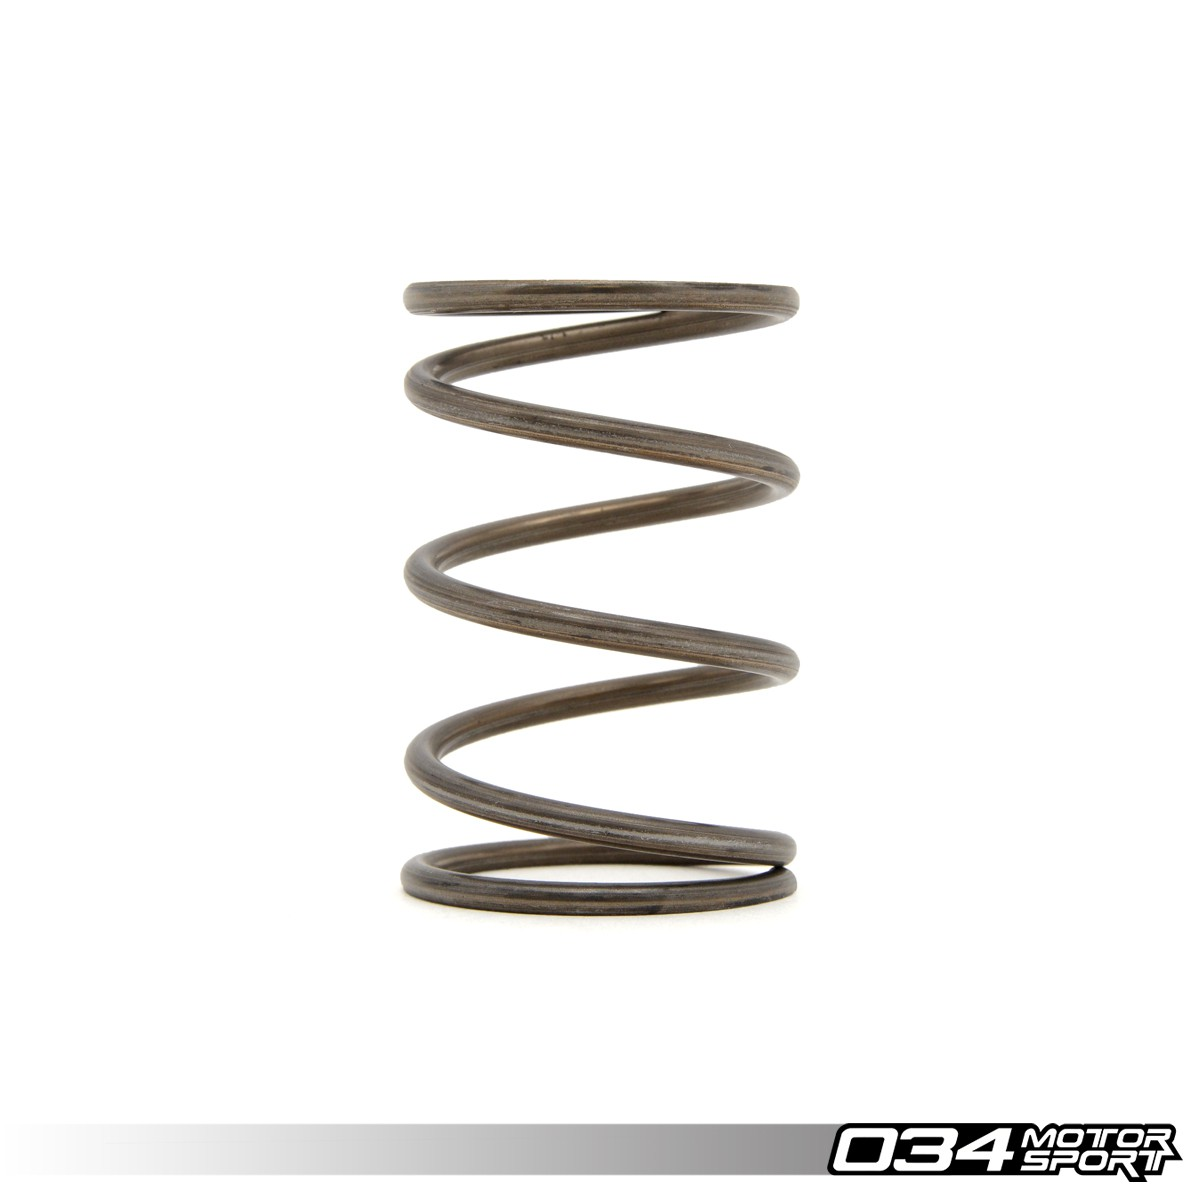 Audi Wastegate Spring, 1.9BAR | 034-145-6001